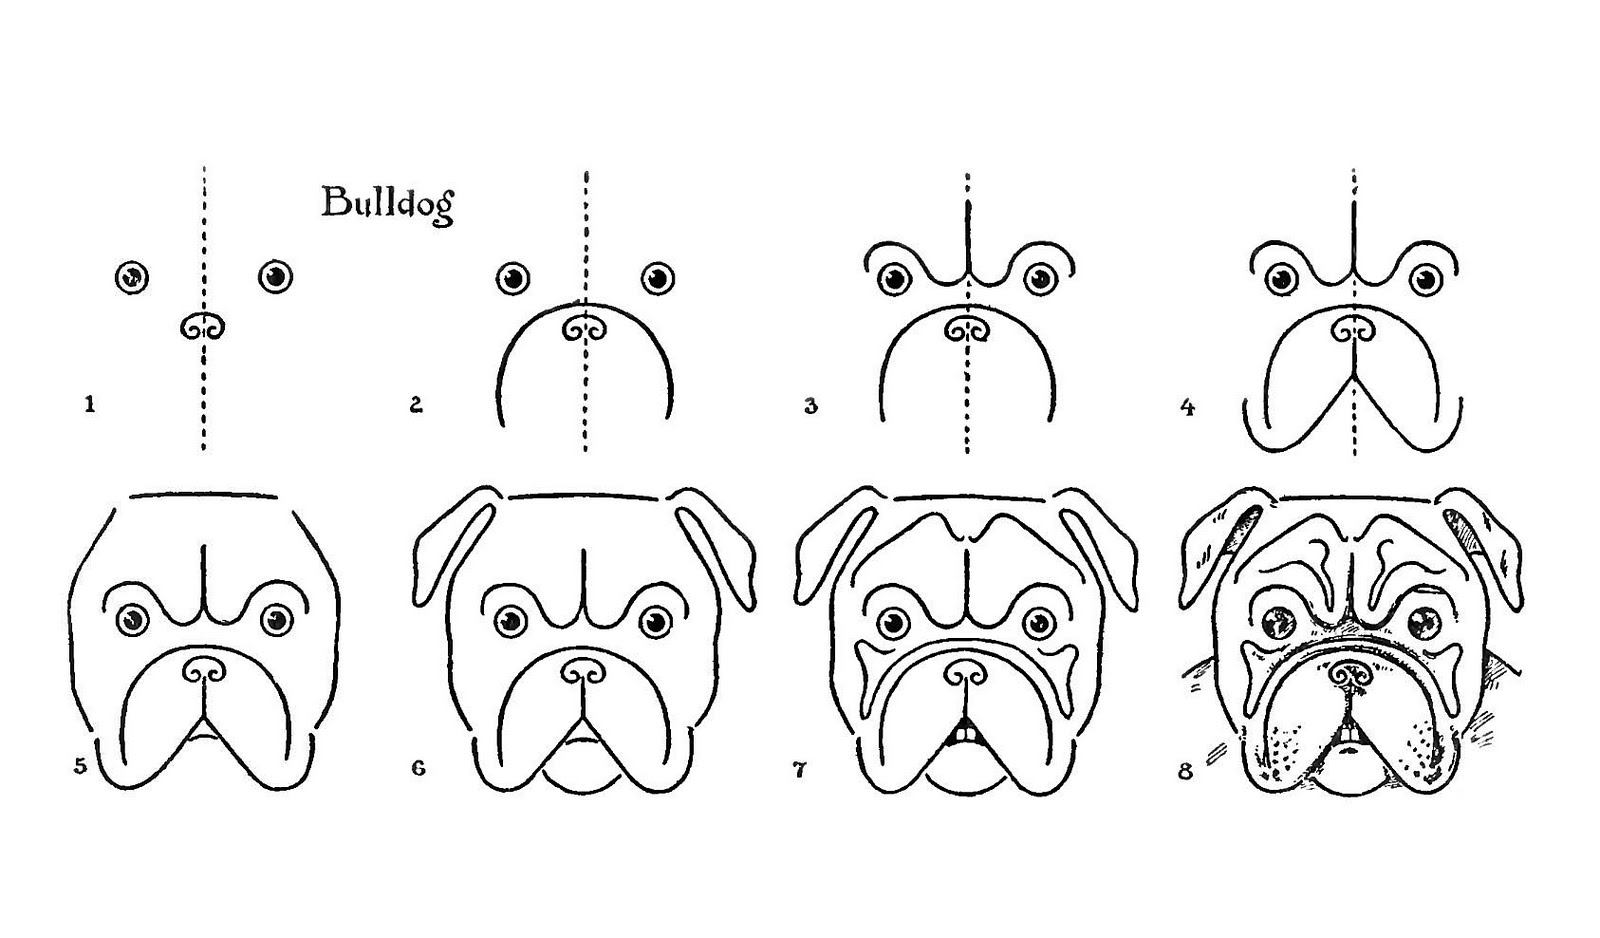 vintage kids printable draw a bulldog the graphics fairy